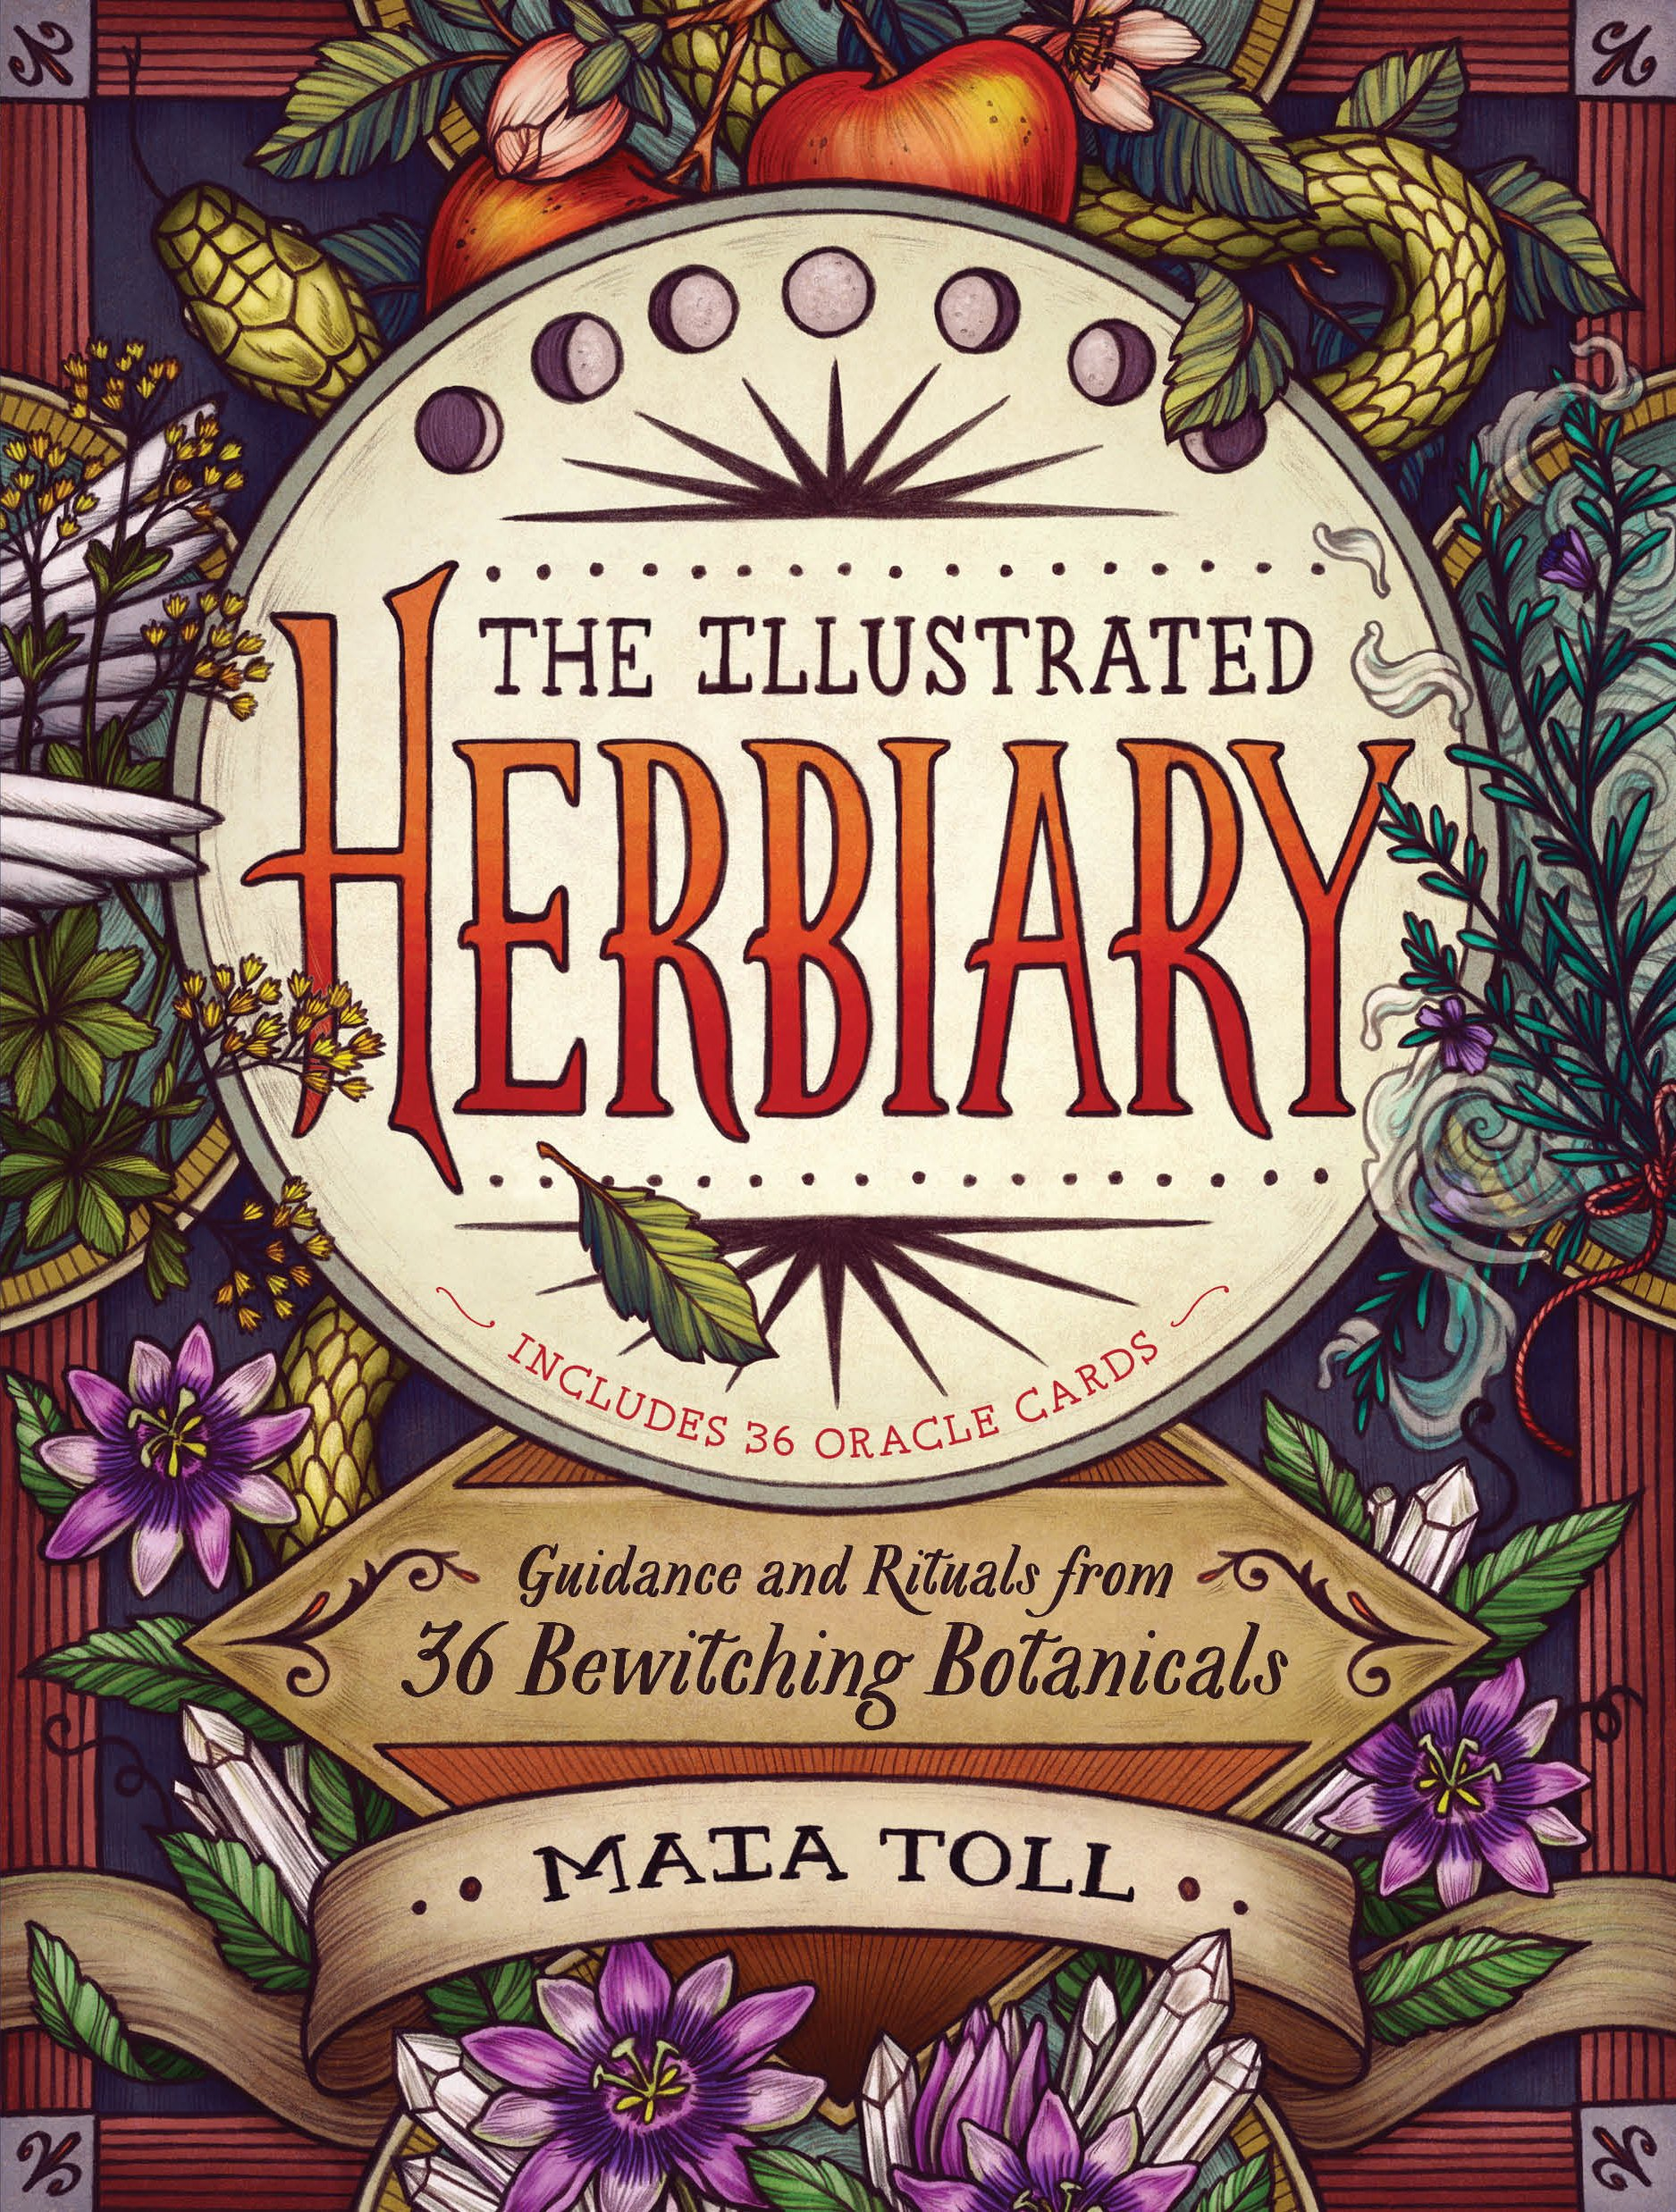 Illustrated Herbiary  Guidance And Rituals From 36 Bewitching Botanicals  Wild Wisdom